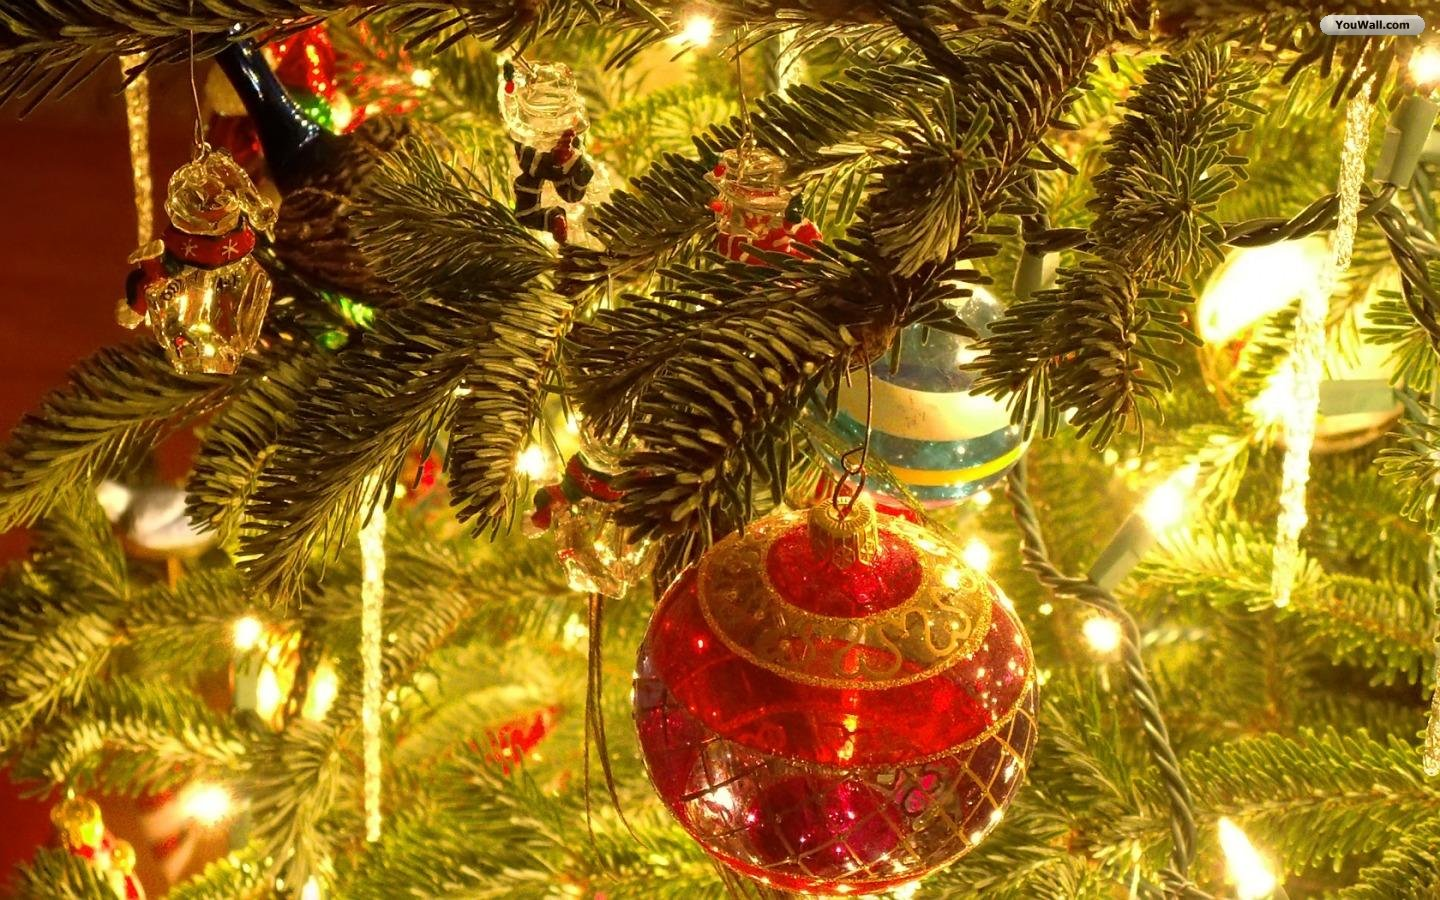 Christmas Tree Wallpaper   wallpaperwallpapersfree wallpaper 1440x900